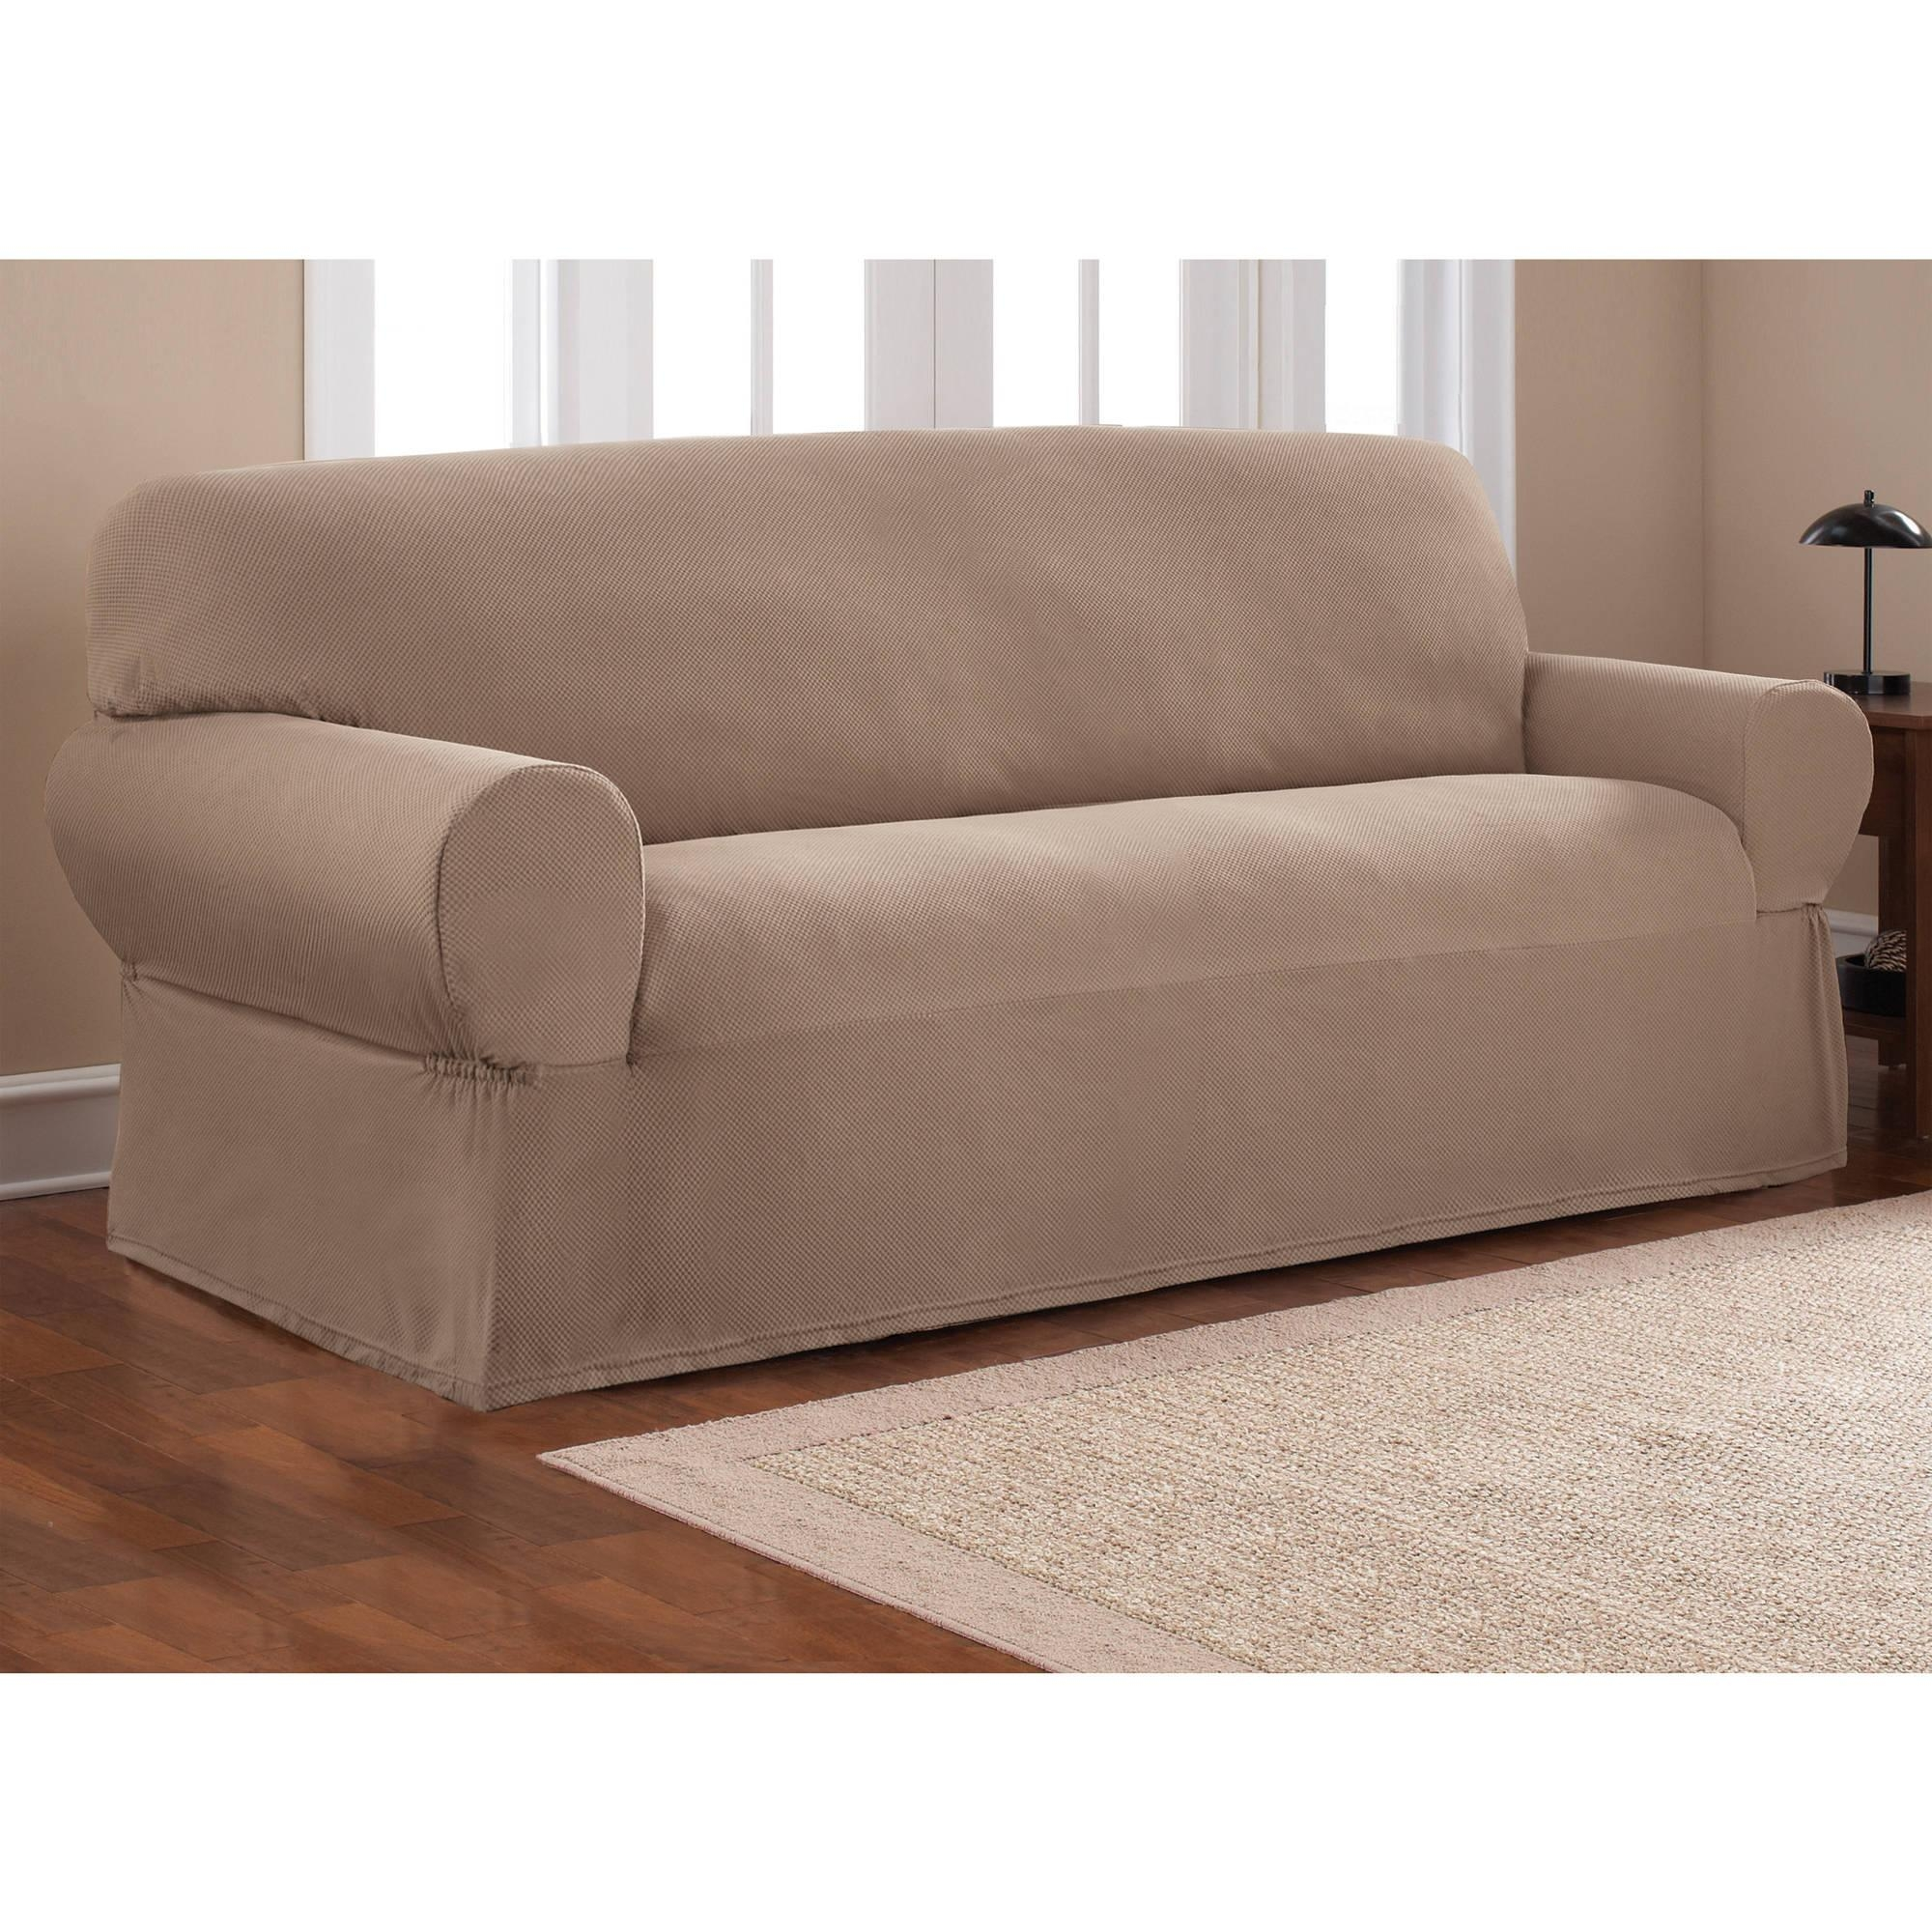 Sofas : Wonderful Club Chair Slipcover Cloth Couch Covers Chaise Pertaining To Large Sofa Slipcovers (Image 18 of 23)